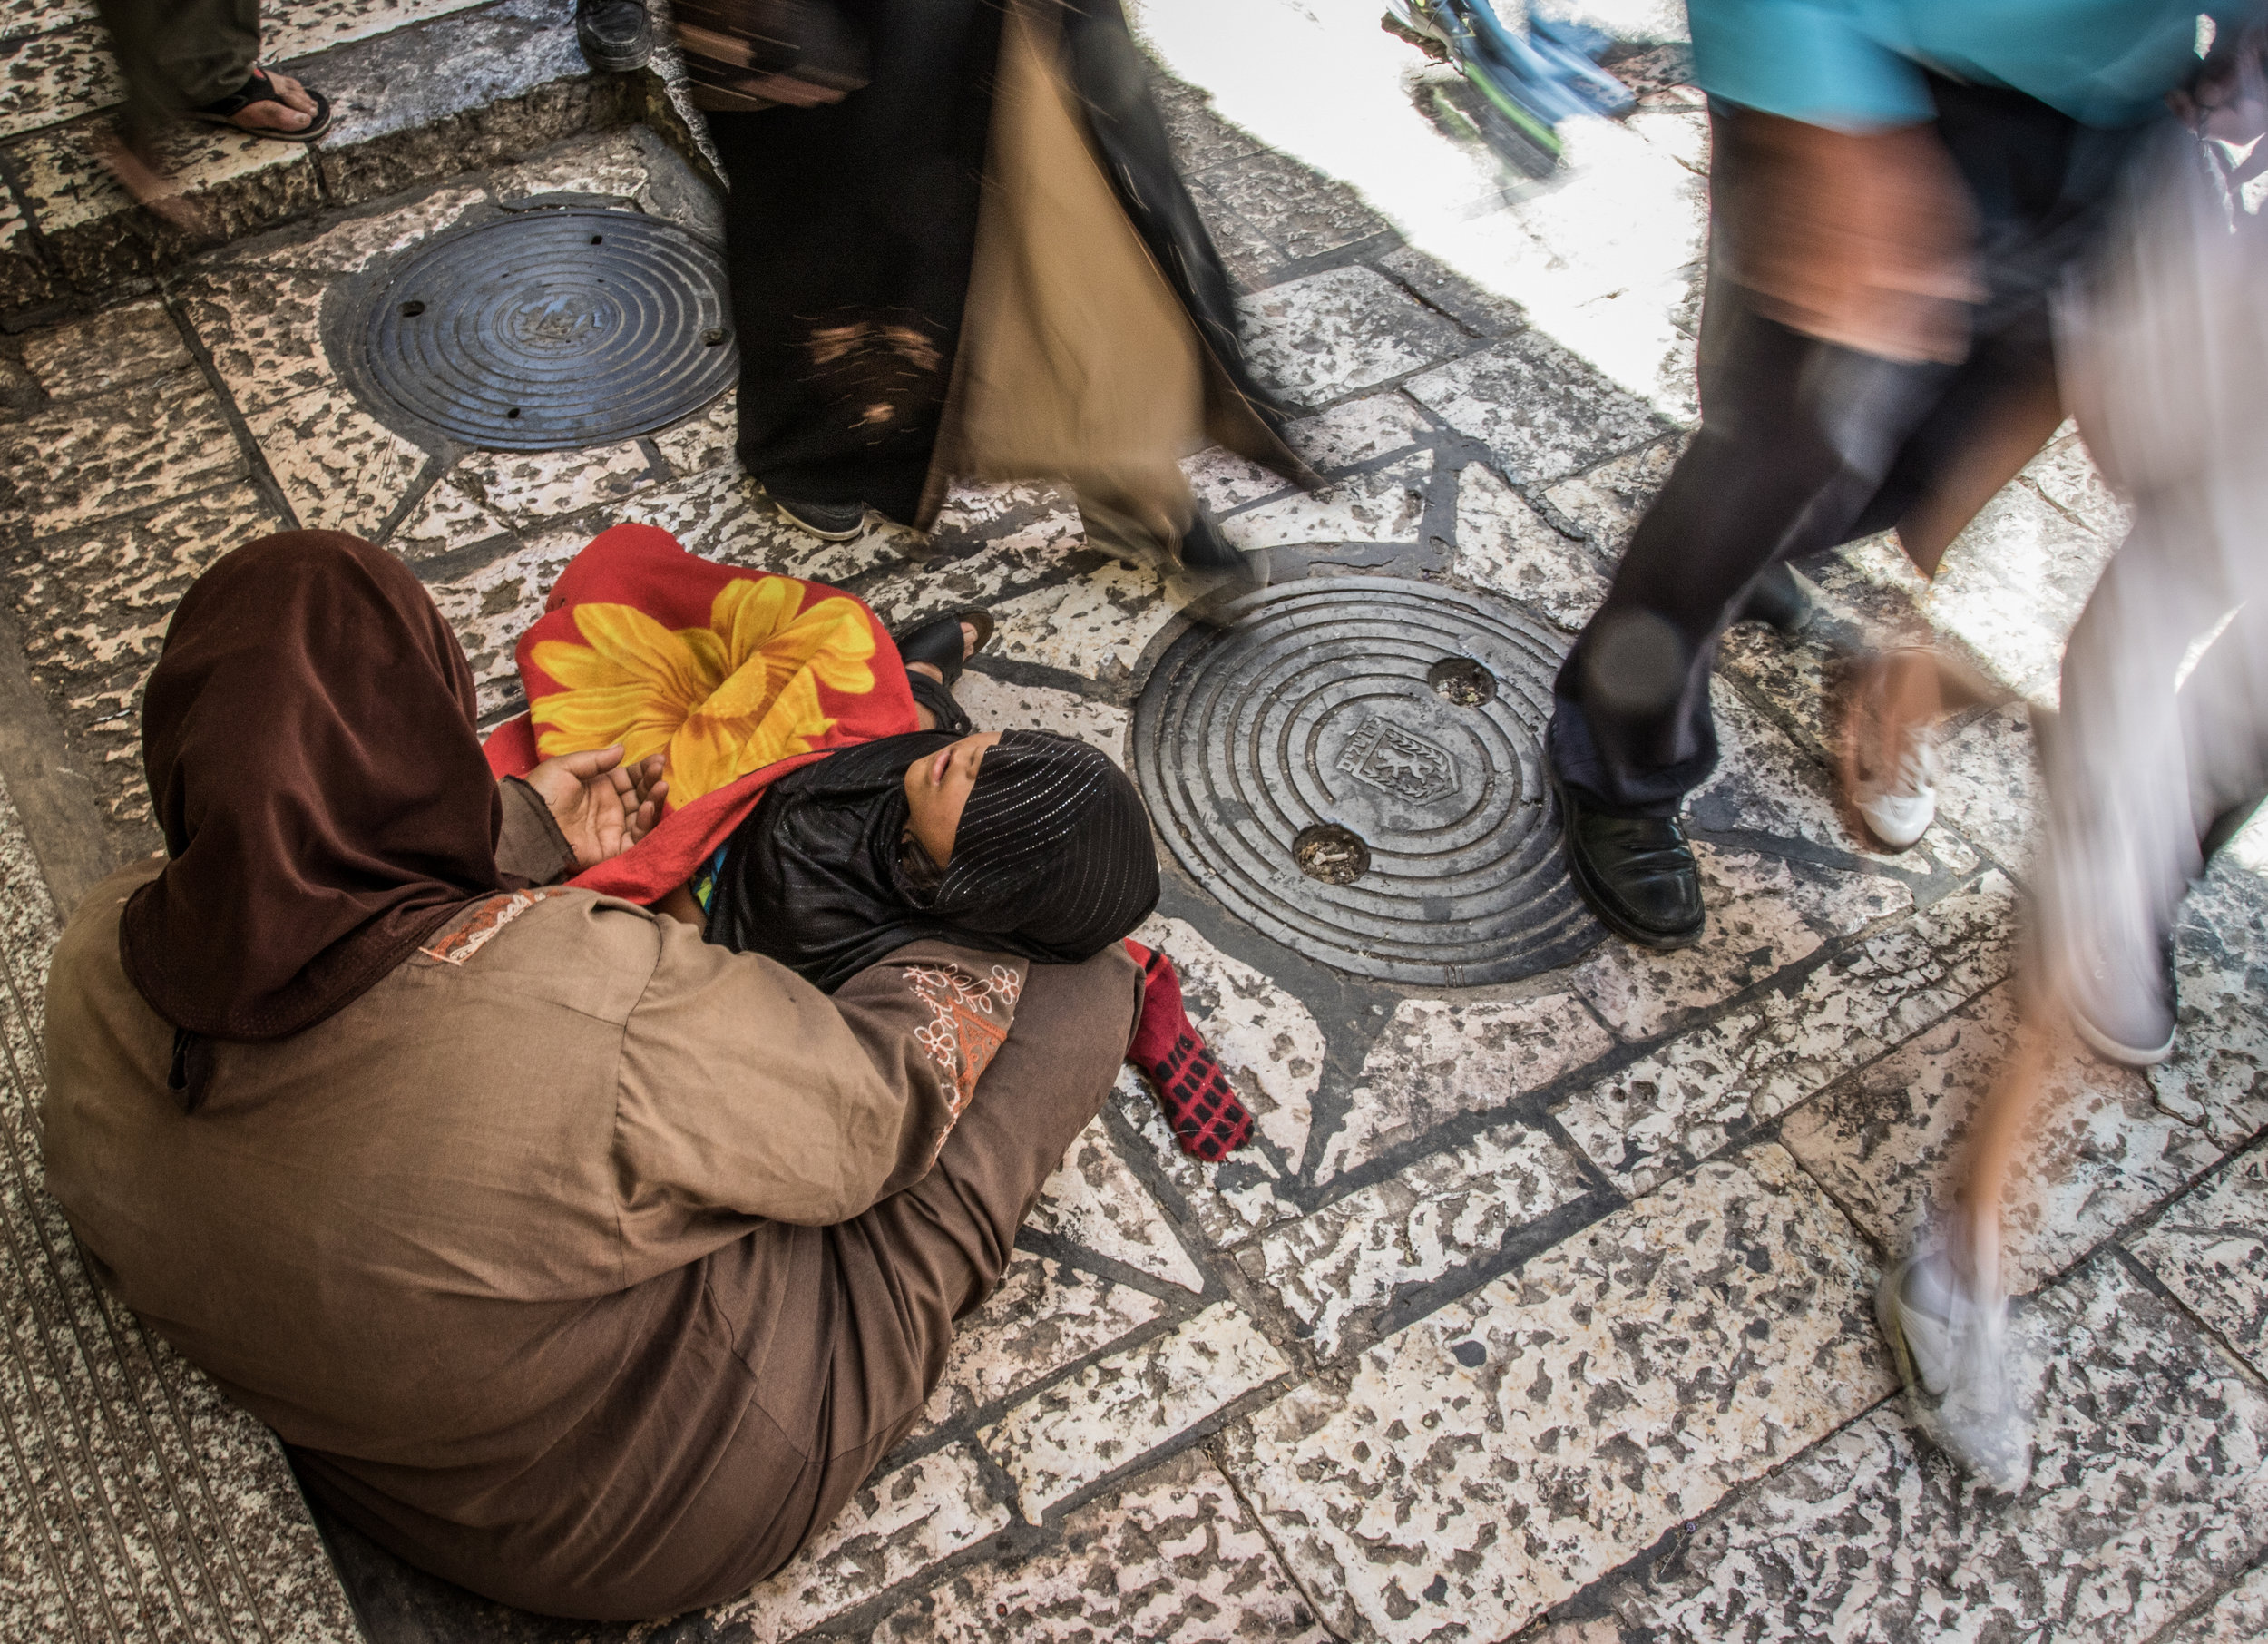 A woman asks for money from passersby as her child rests in her lap in the Old City of Jerusalem during the Islamic holy month of Ramadan, June 17, 2016. During the holy month, Muslims are encouraged to participate more heavily in Sadaqah, or voluntary charity and good works, as part of the religious celebrations.